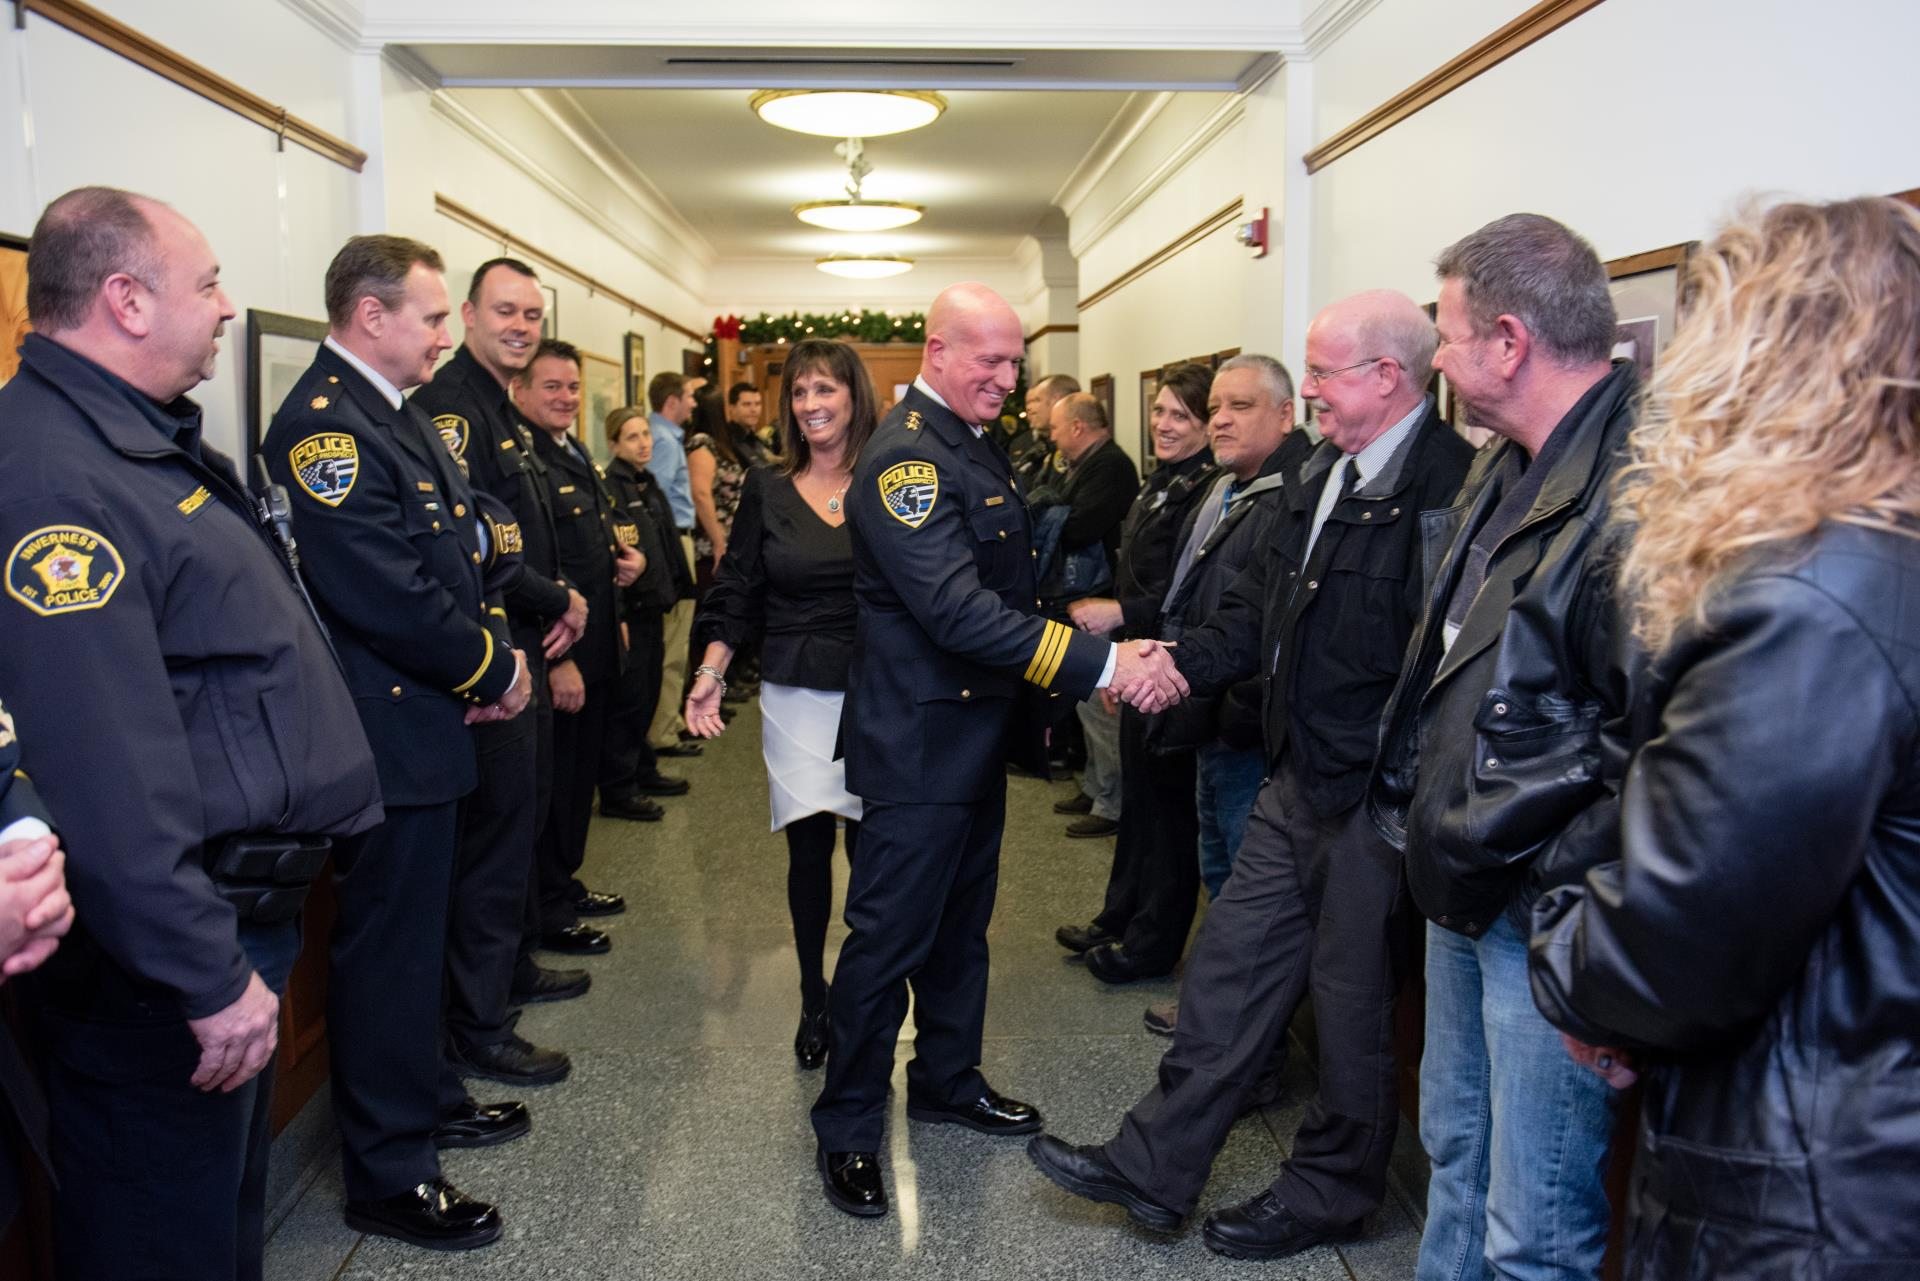 Chief Koziol Swearing-In Ceremony Final-4274